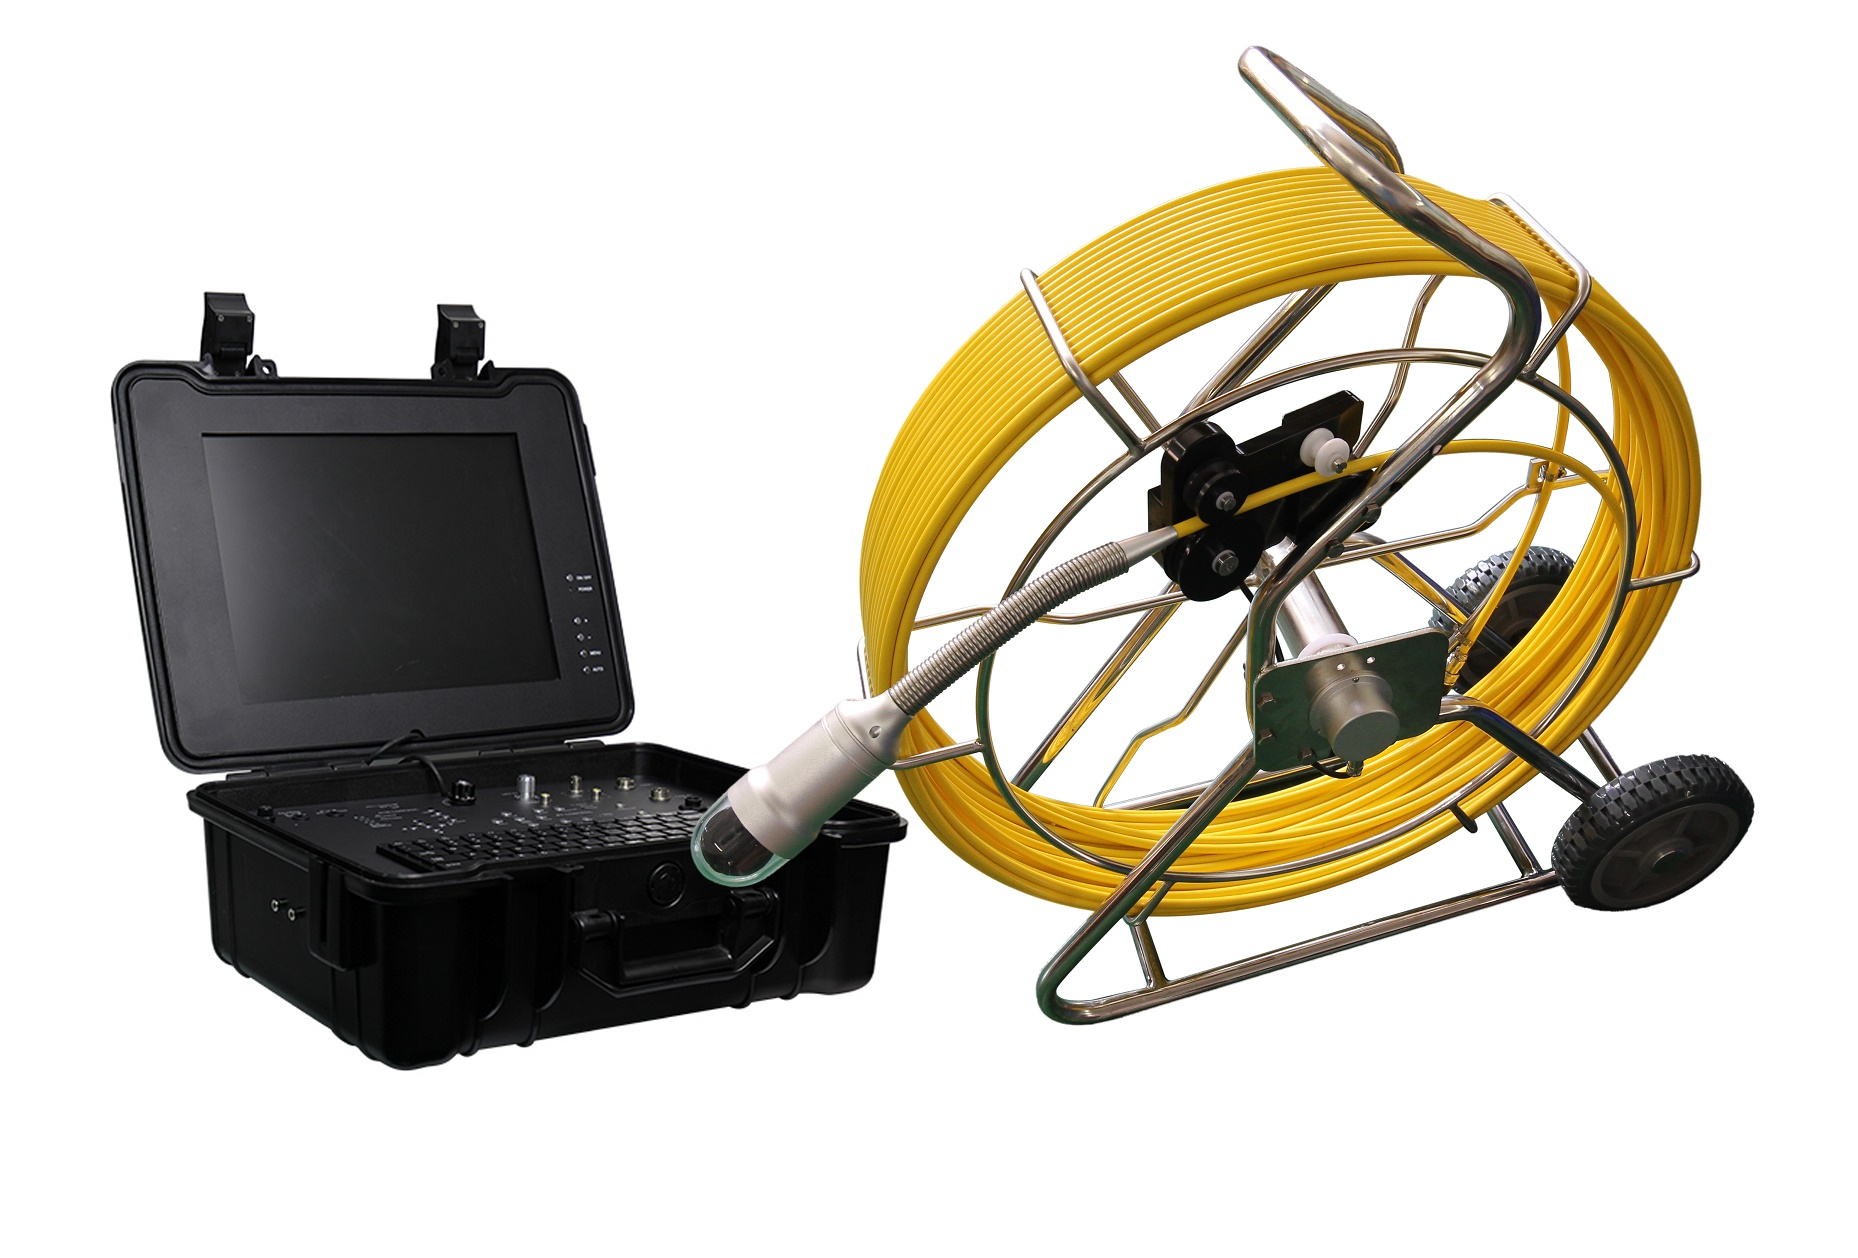 WOPSON 360 rotation pipe sewer inspection camera with DVR and locator